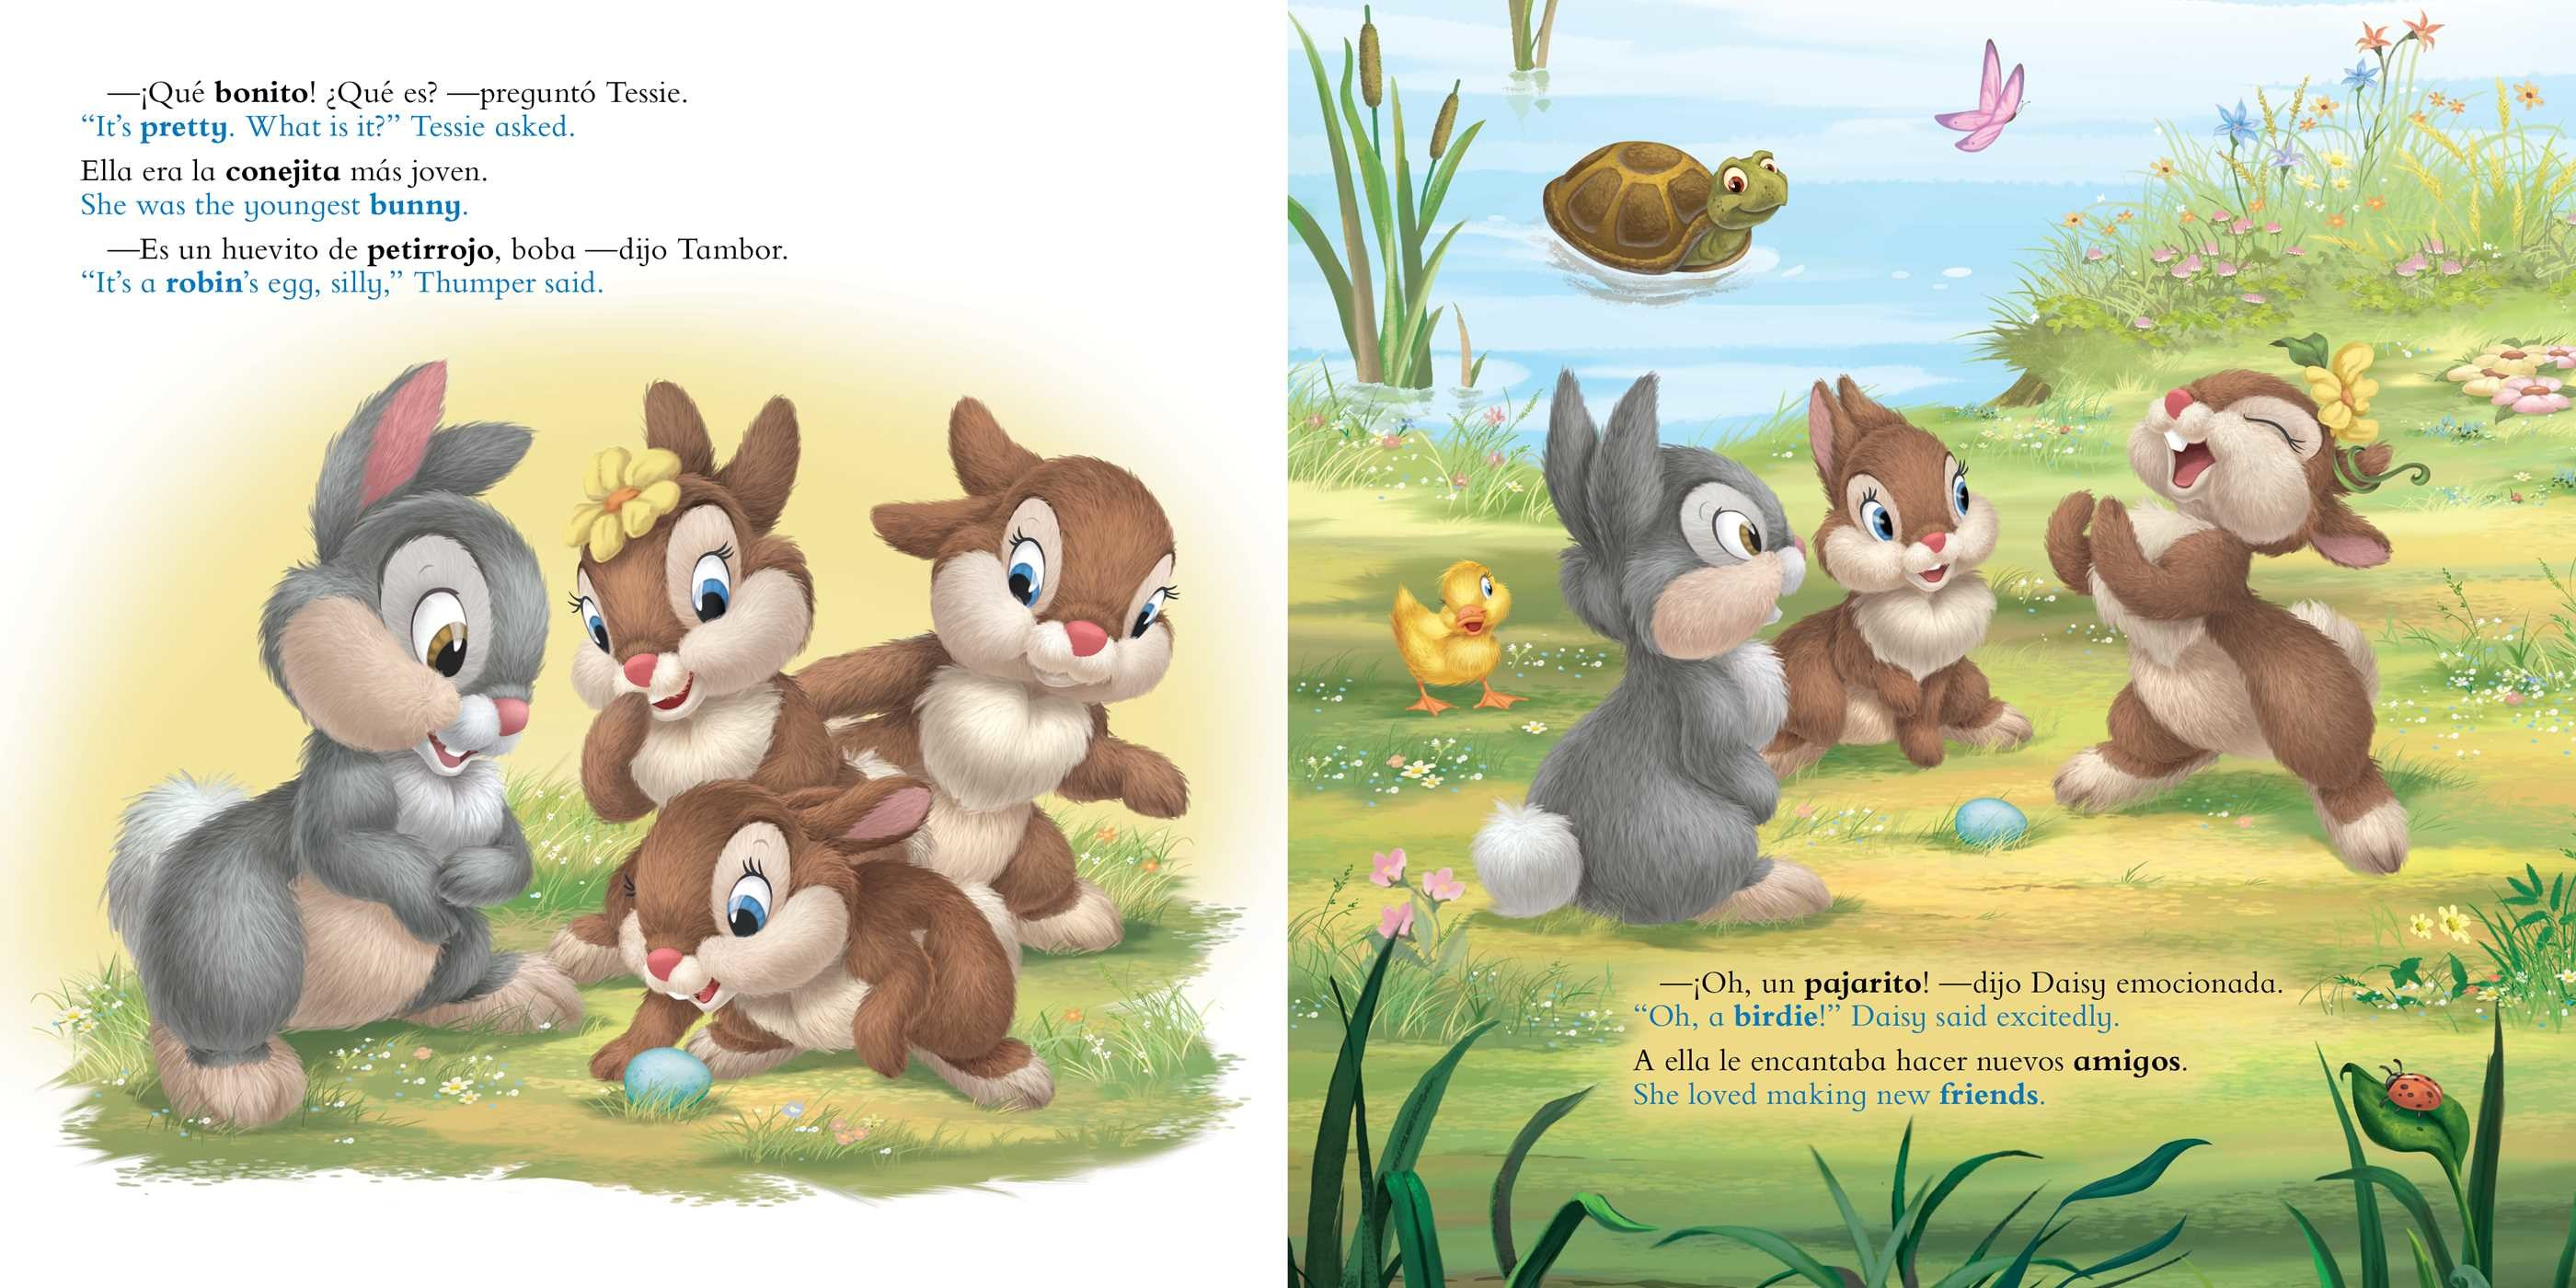 Thumper Finds an Egg / Tambor encuentra un huevito (English